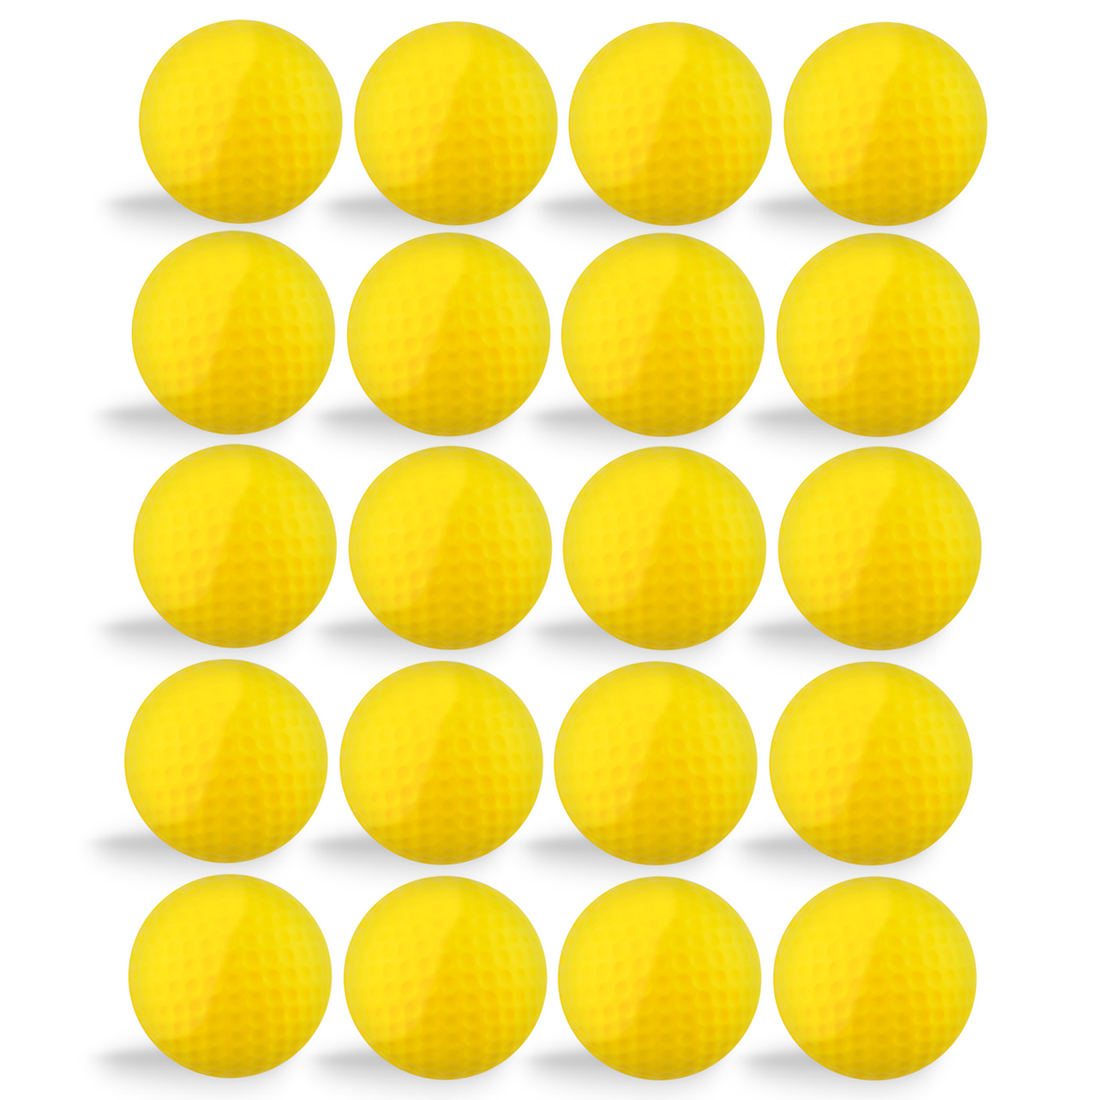 20pcs PU Foam Sponge Golf Practice Balls Indoor Practice Training Balls Golf Training Aids